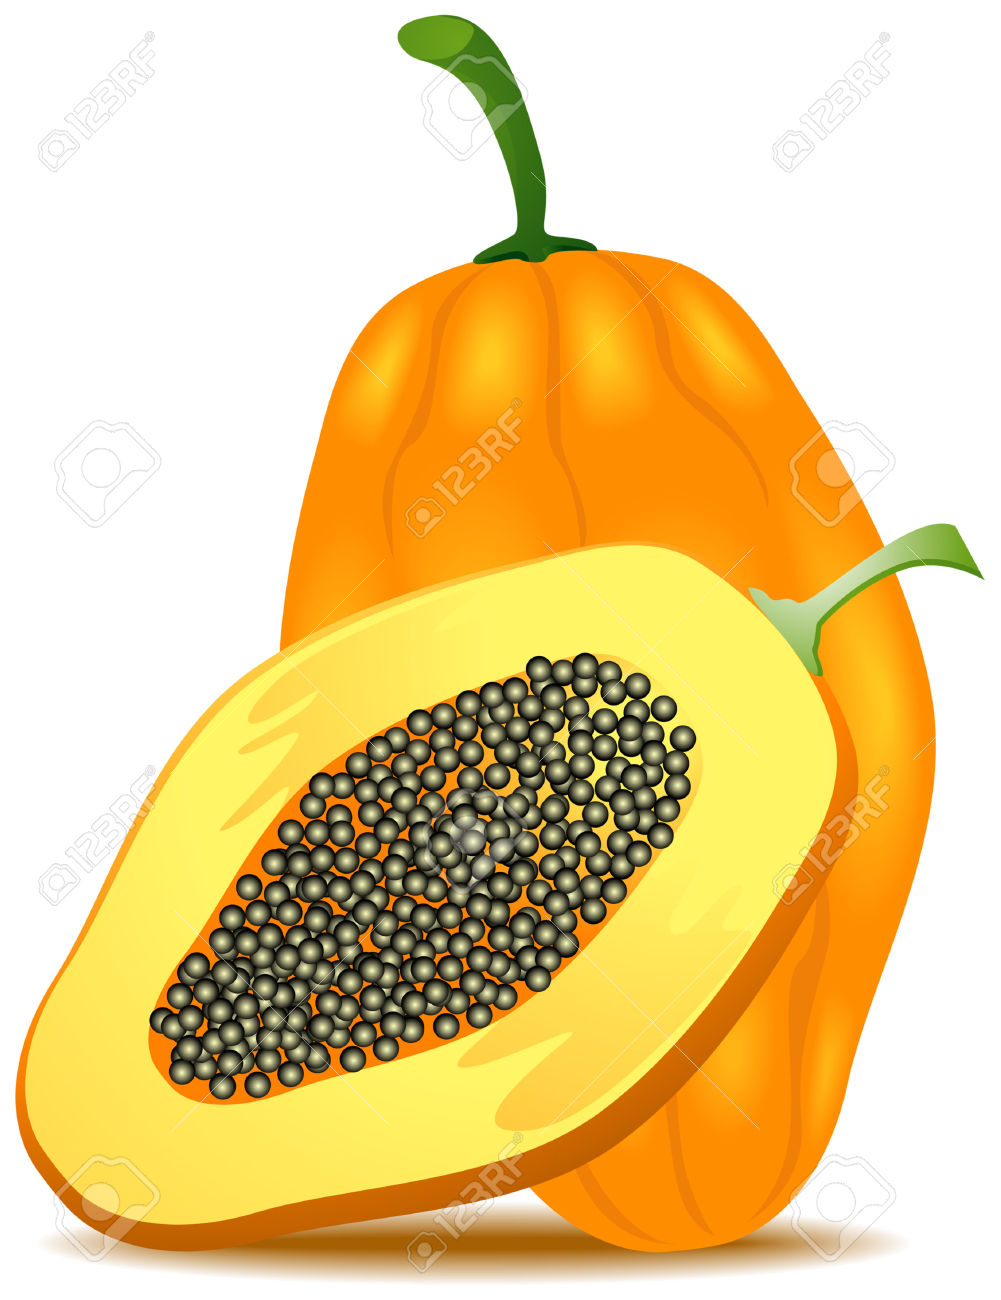 Papaya Illustration With Clipping Path Royalty Free Cliparts.